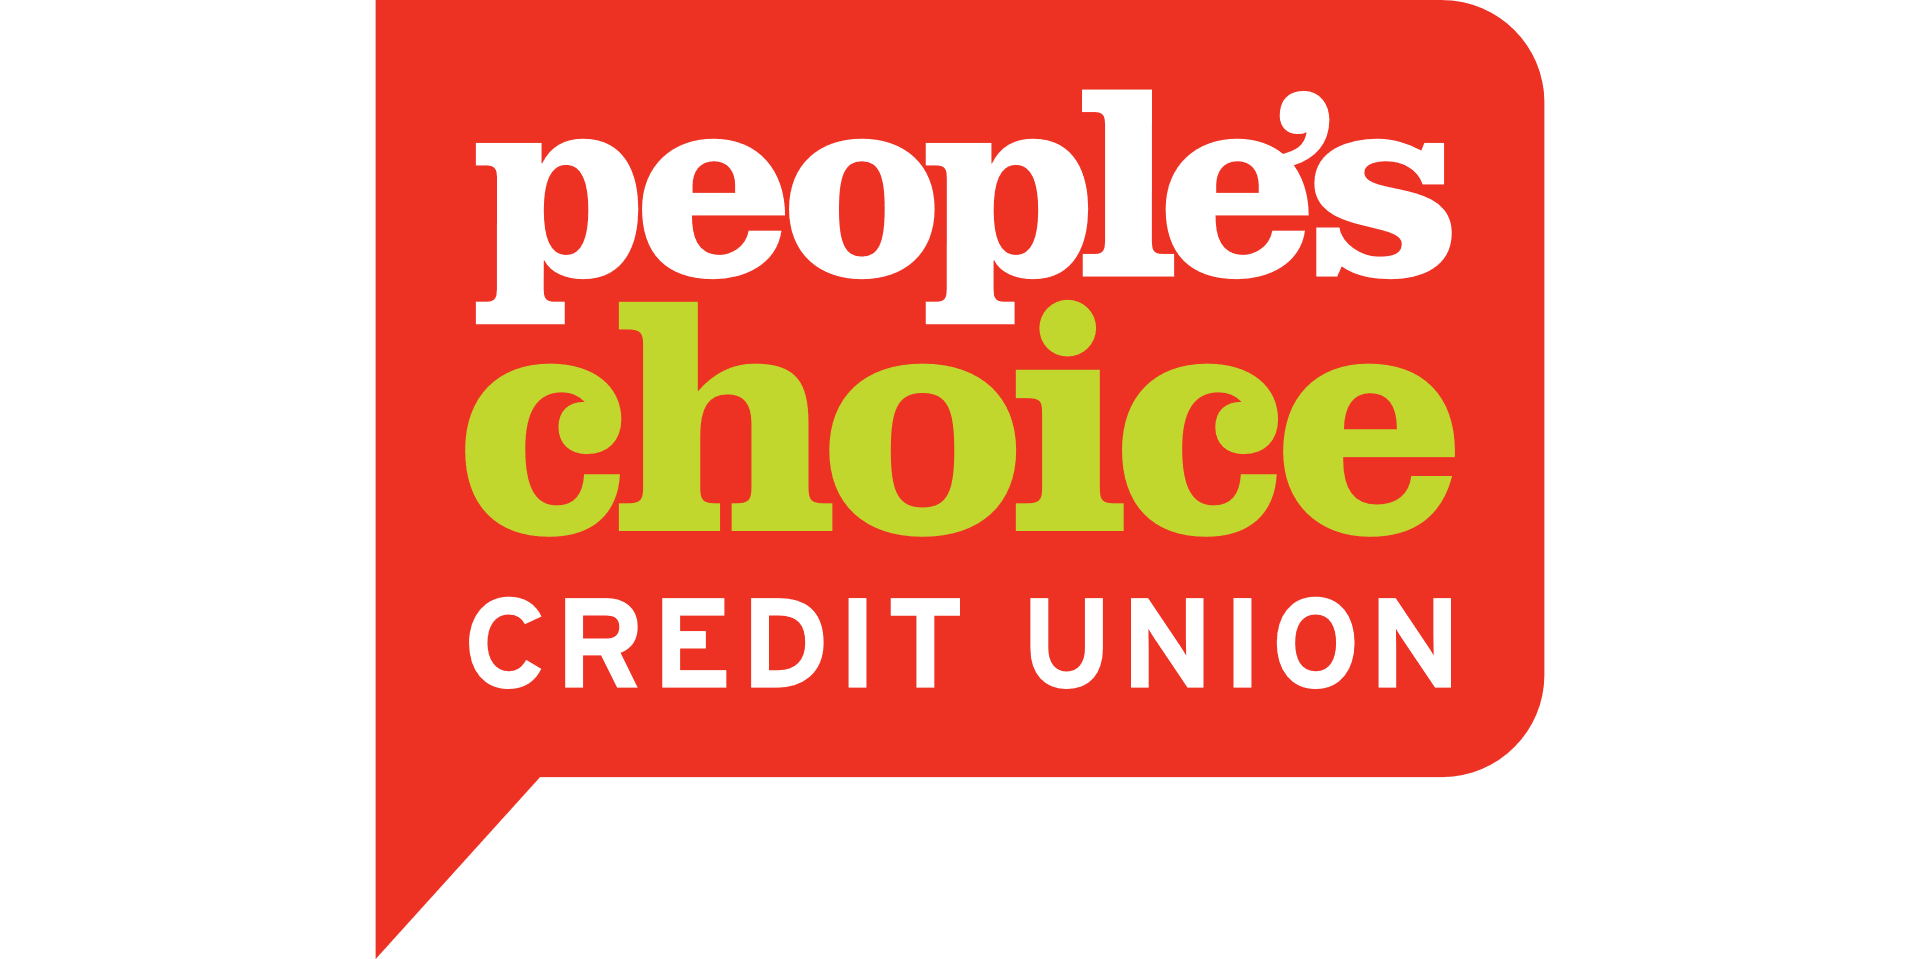 People's Choice Credit Union - Seaford, SA 5169 - (01) 3118 1182 | ShowMeLocal.com